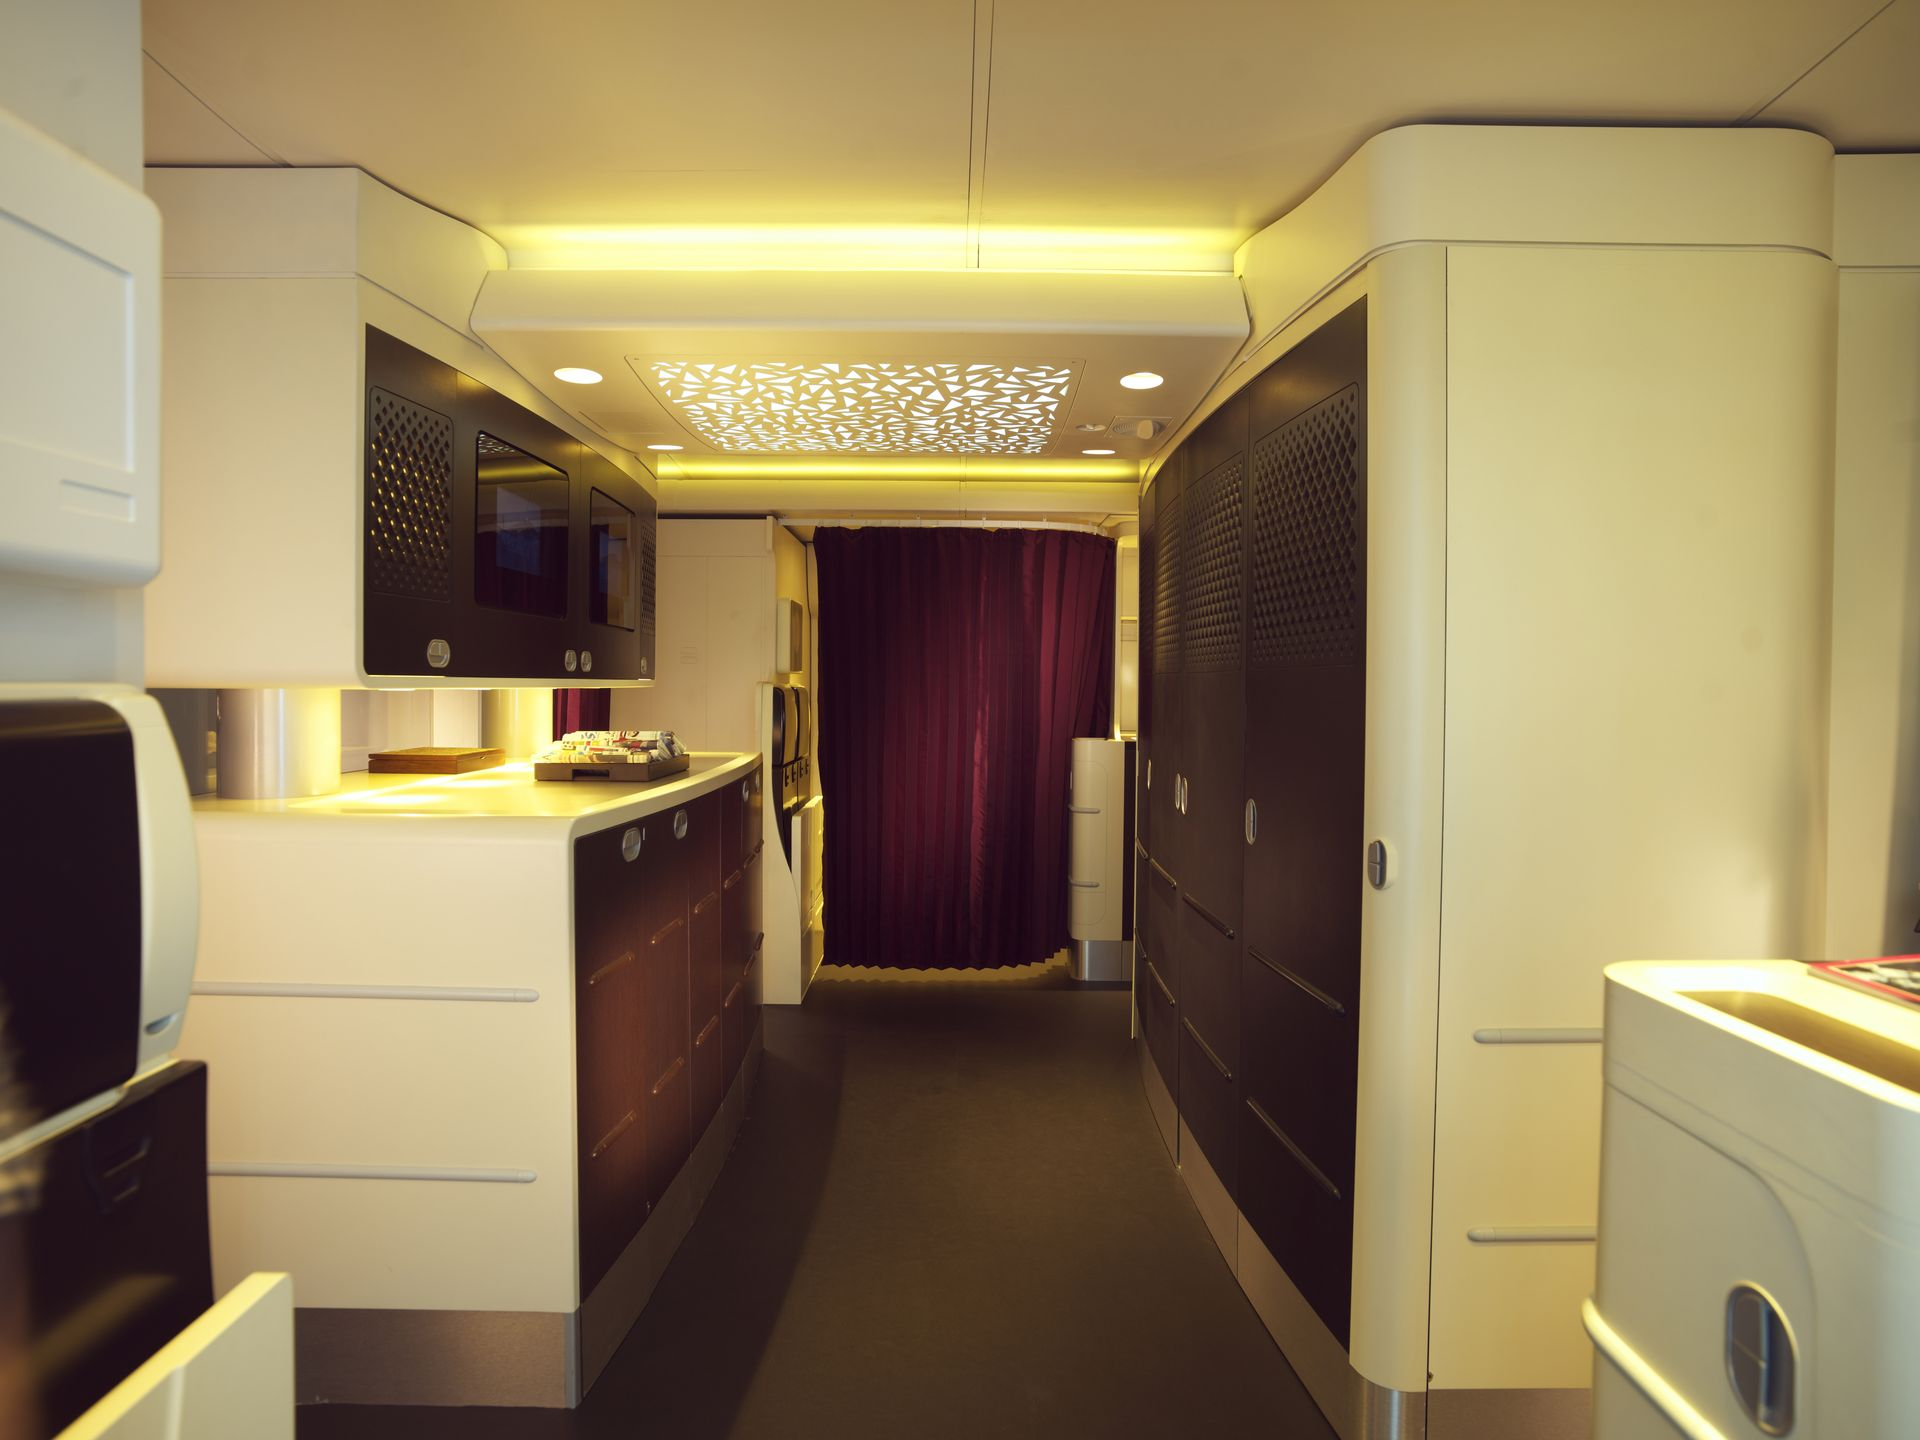 1399311863000--2A380-GALLEY